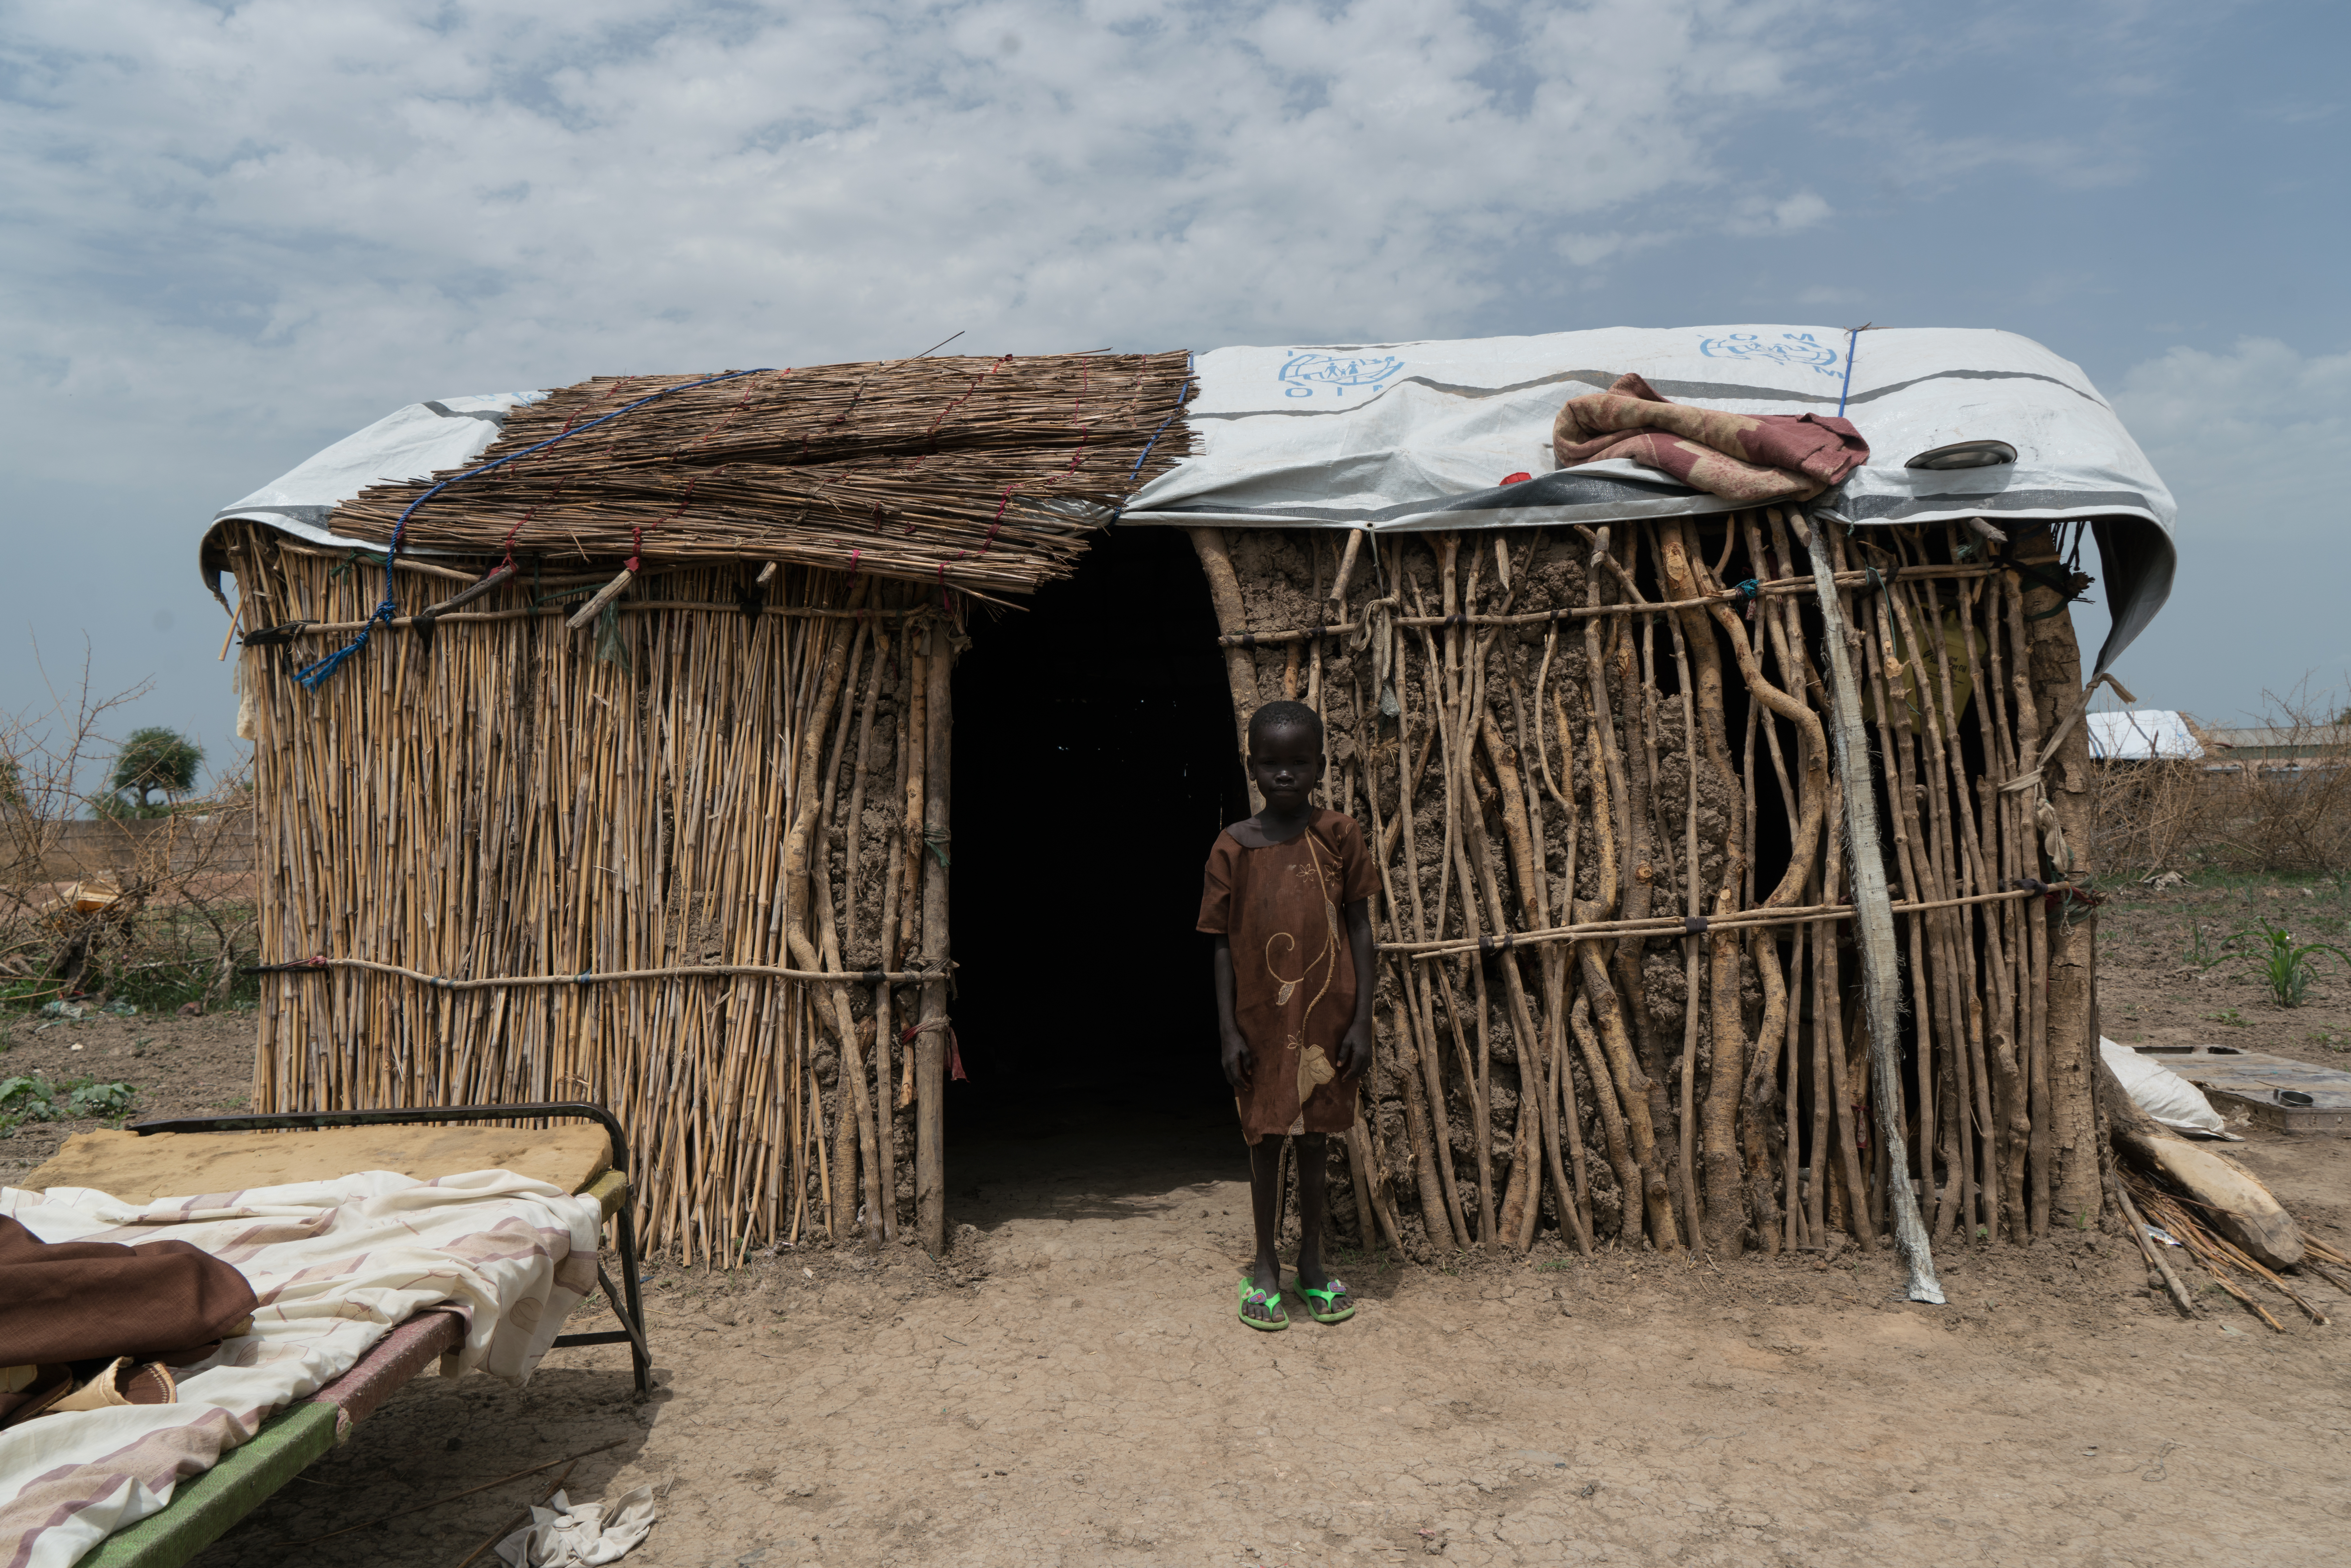 A Story of Hope for South Sudan's 5th Birthday